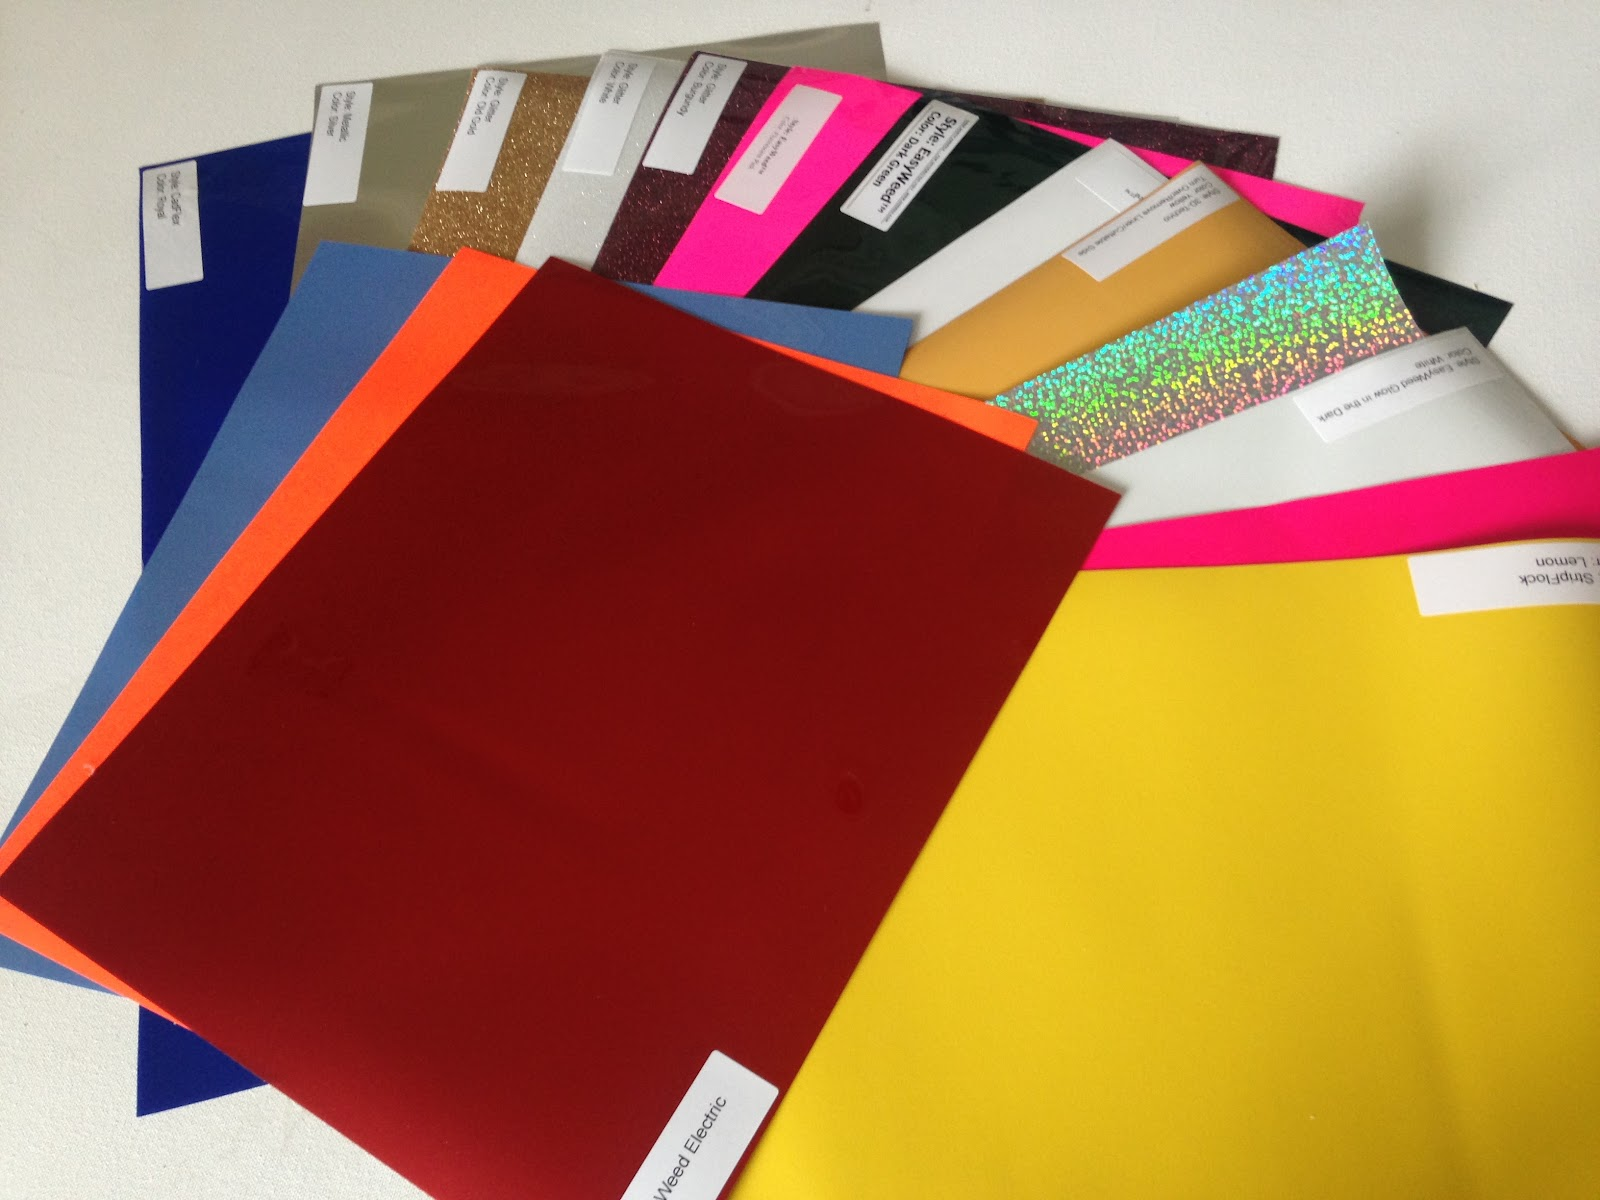 Heat Transfer Vinyl Temperature And Time Settings At Your